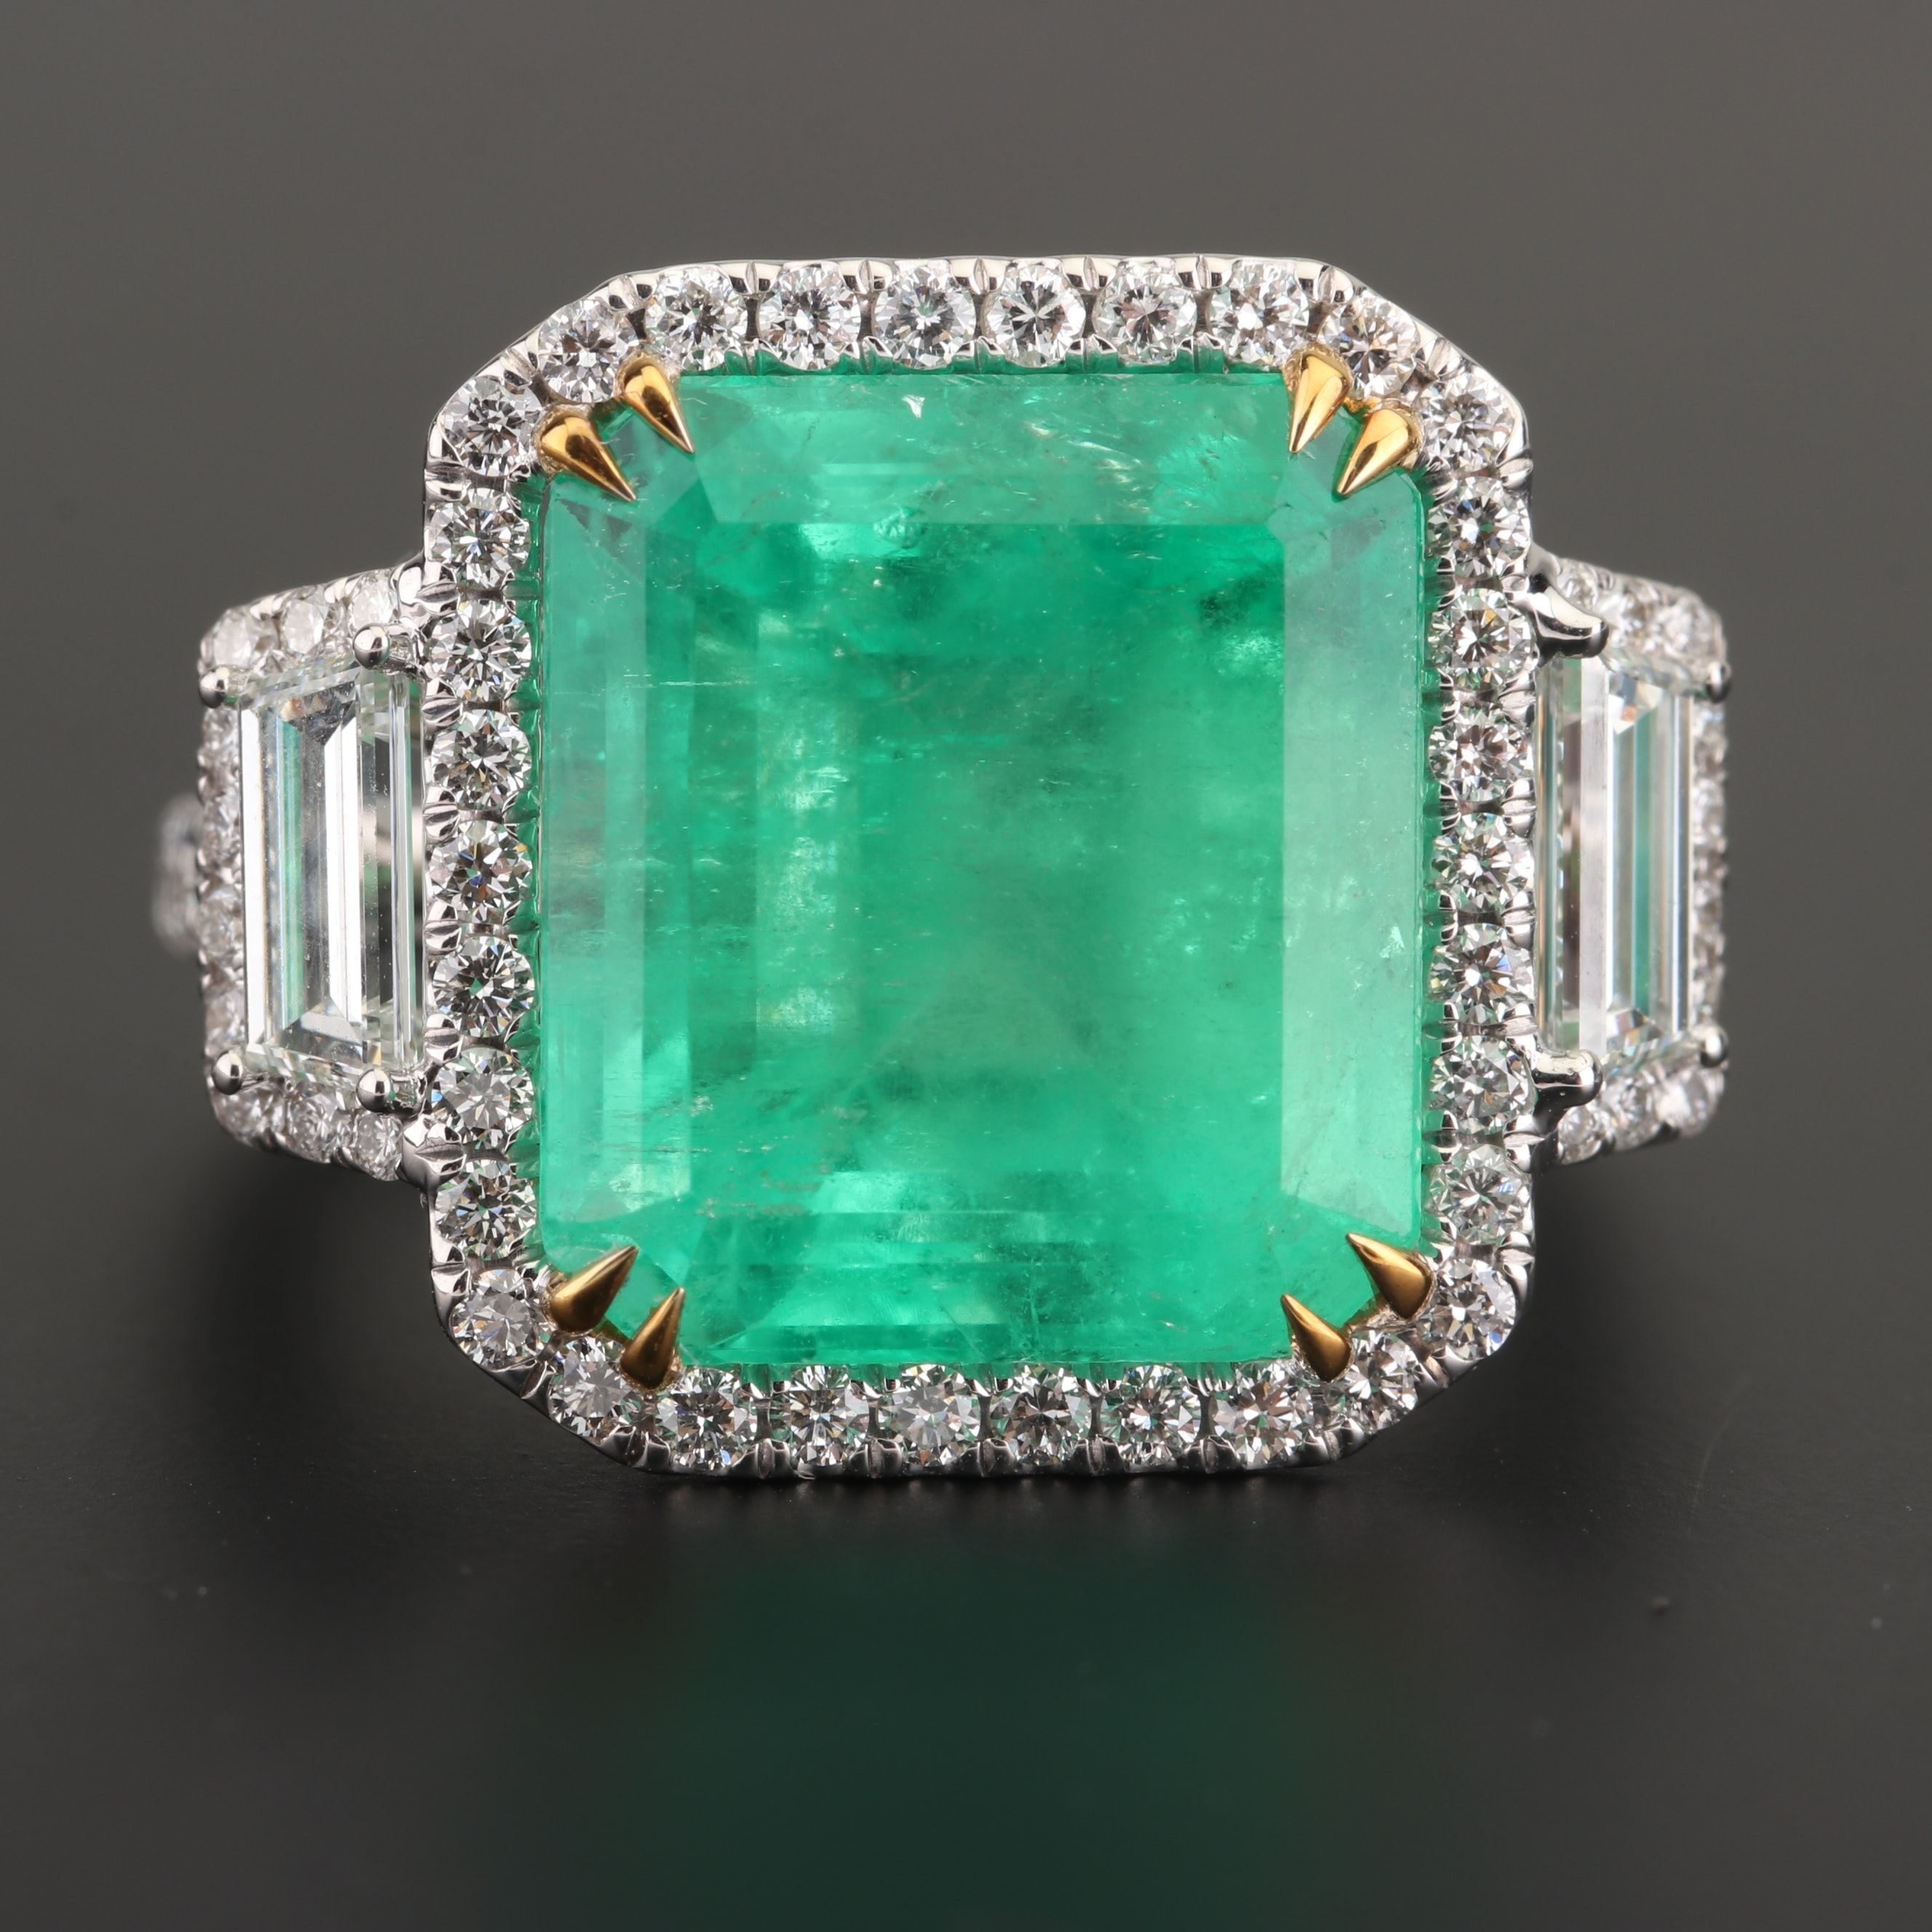 18K White Gold 10.00 CT Colombian Emerald and 1.63 CTW Diamond Ring with AGL